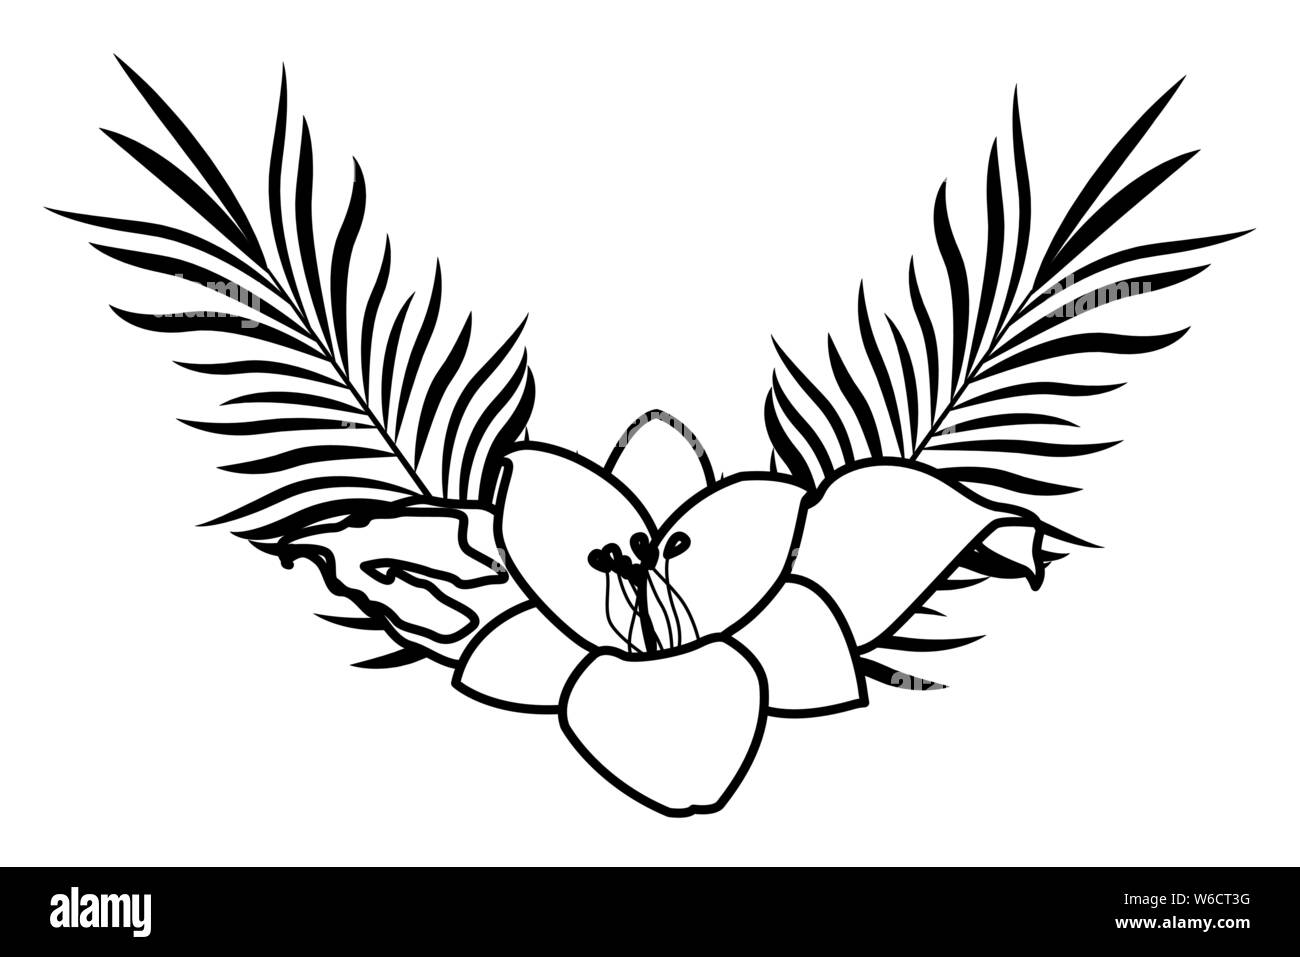 Tropical Flower And Palm Leaves In Black And White Stock Vector Image Art Alamy Here's a collection of beautiful flower clipart including graphics of tropical blossoms, roses, wildflowers, lilies and many other floral images. https www alamy com tropical flower and palm leaves in black and white image262125796 html